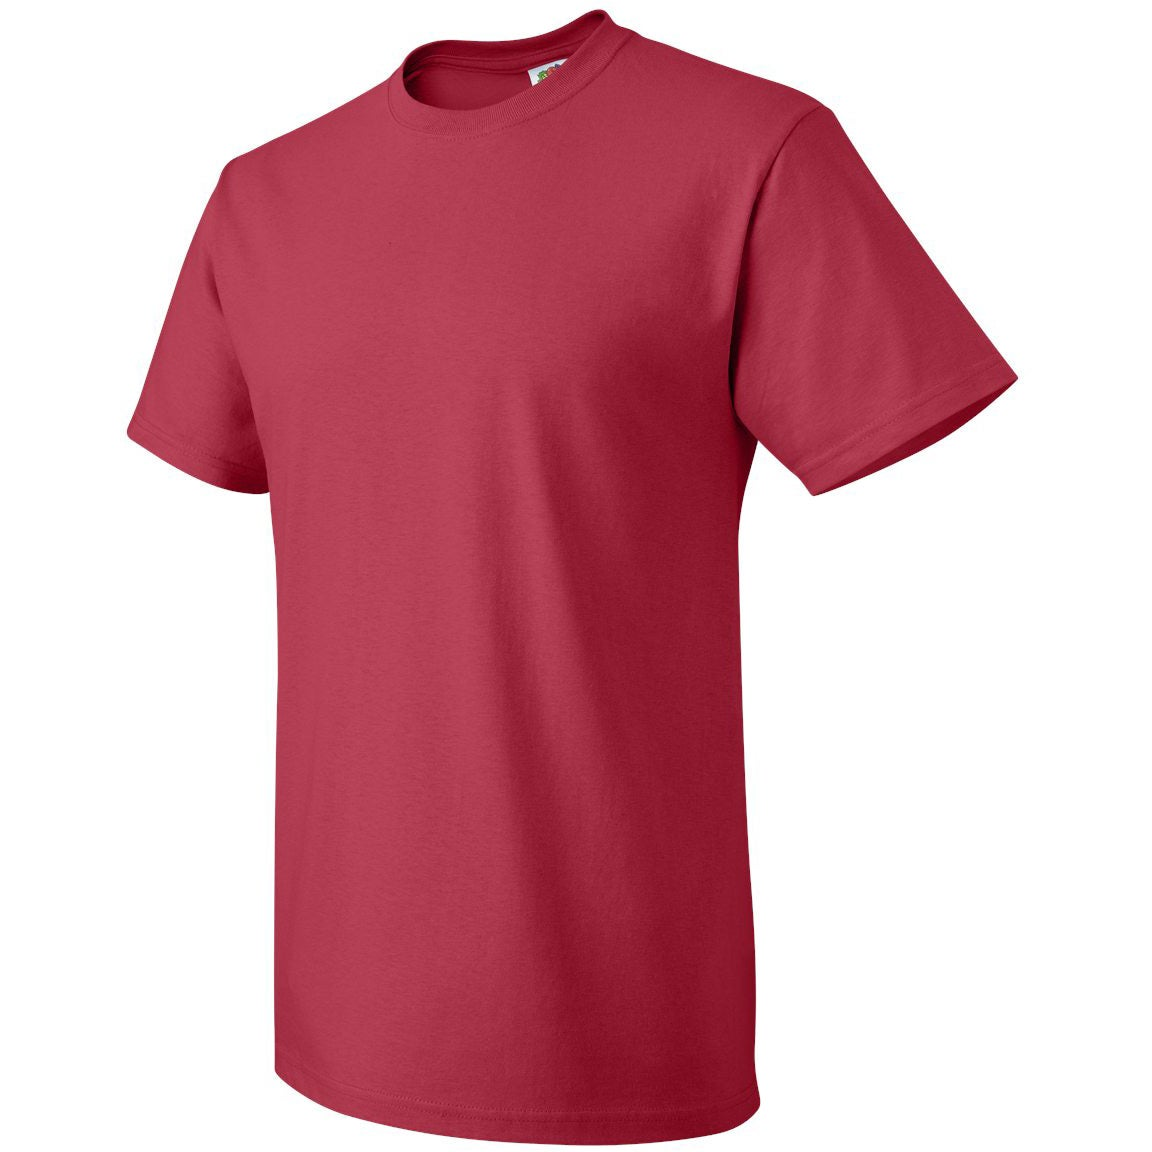 Fruit of the loom heavy cotton t shirt colors 100 for Custom cotton t shirts